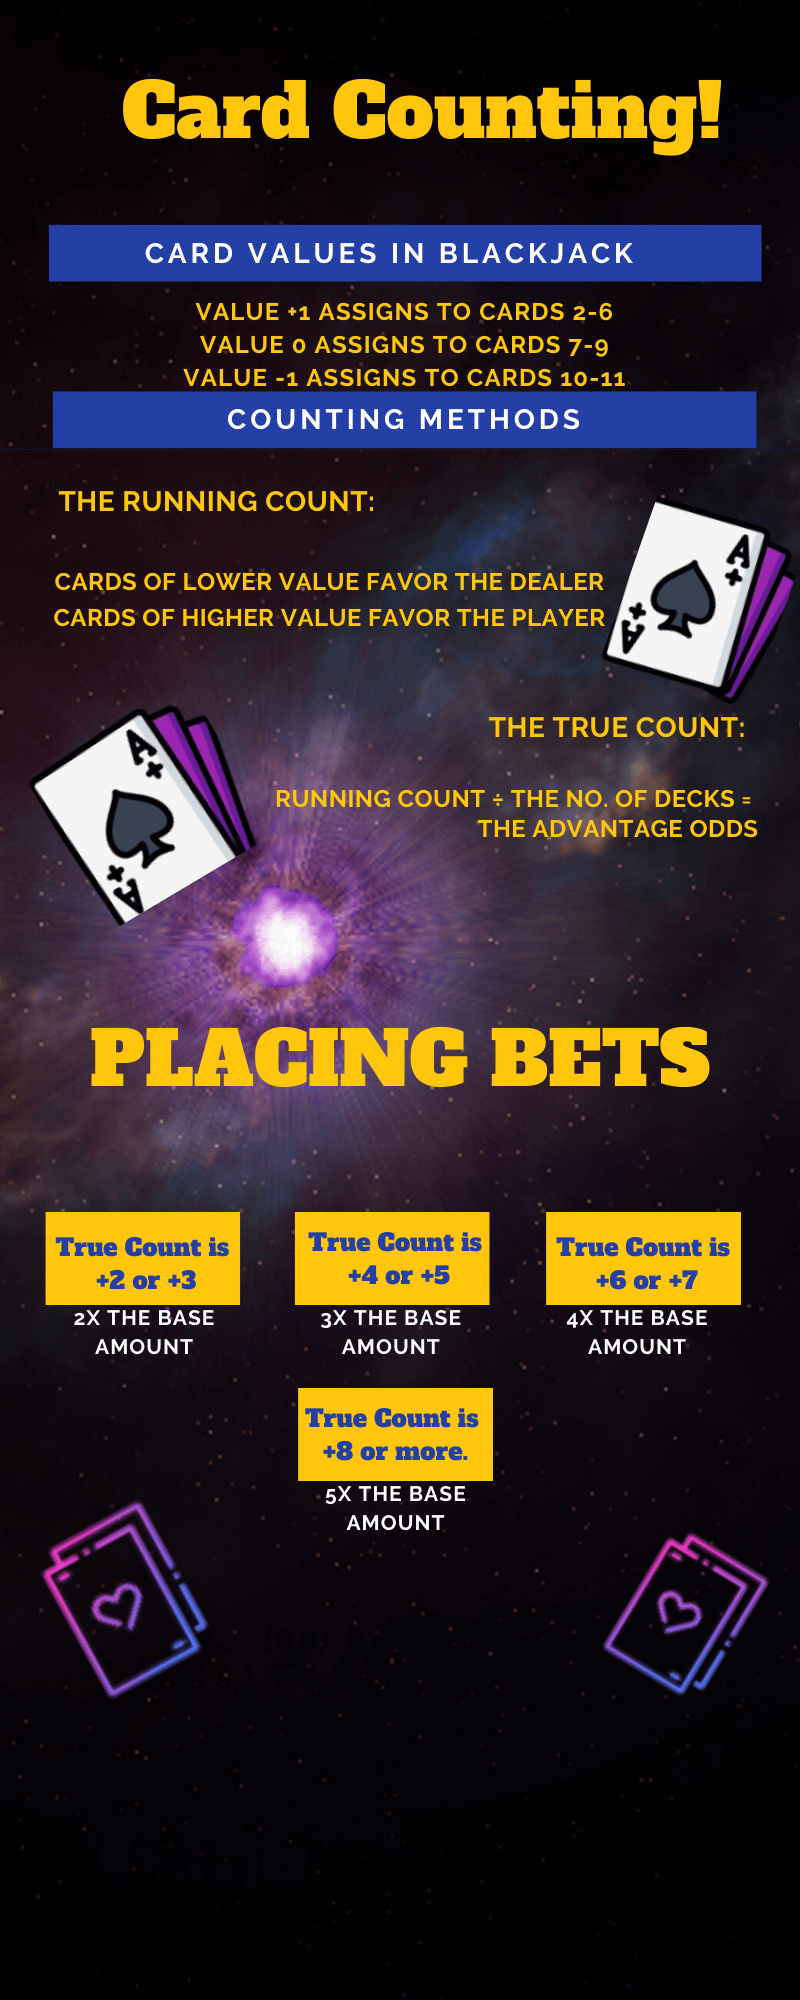 Card Counting Info graphic